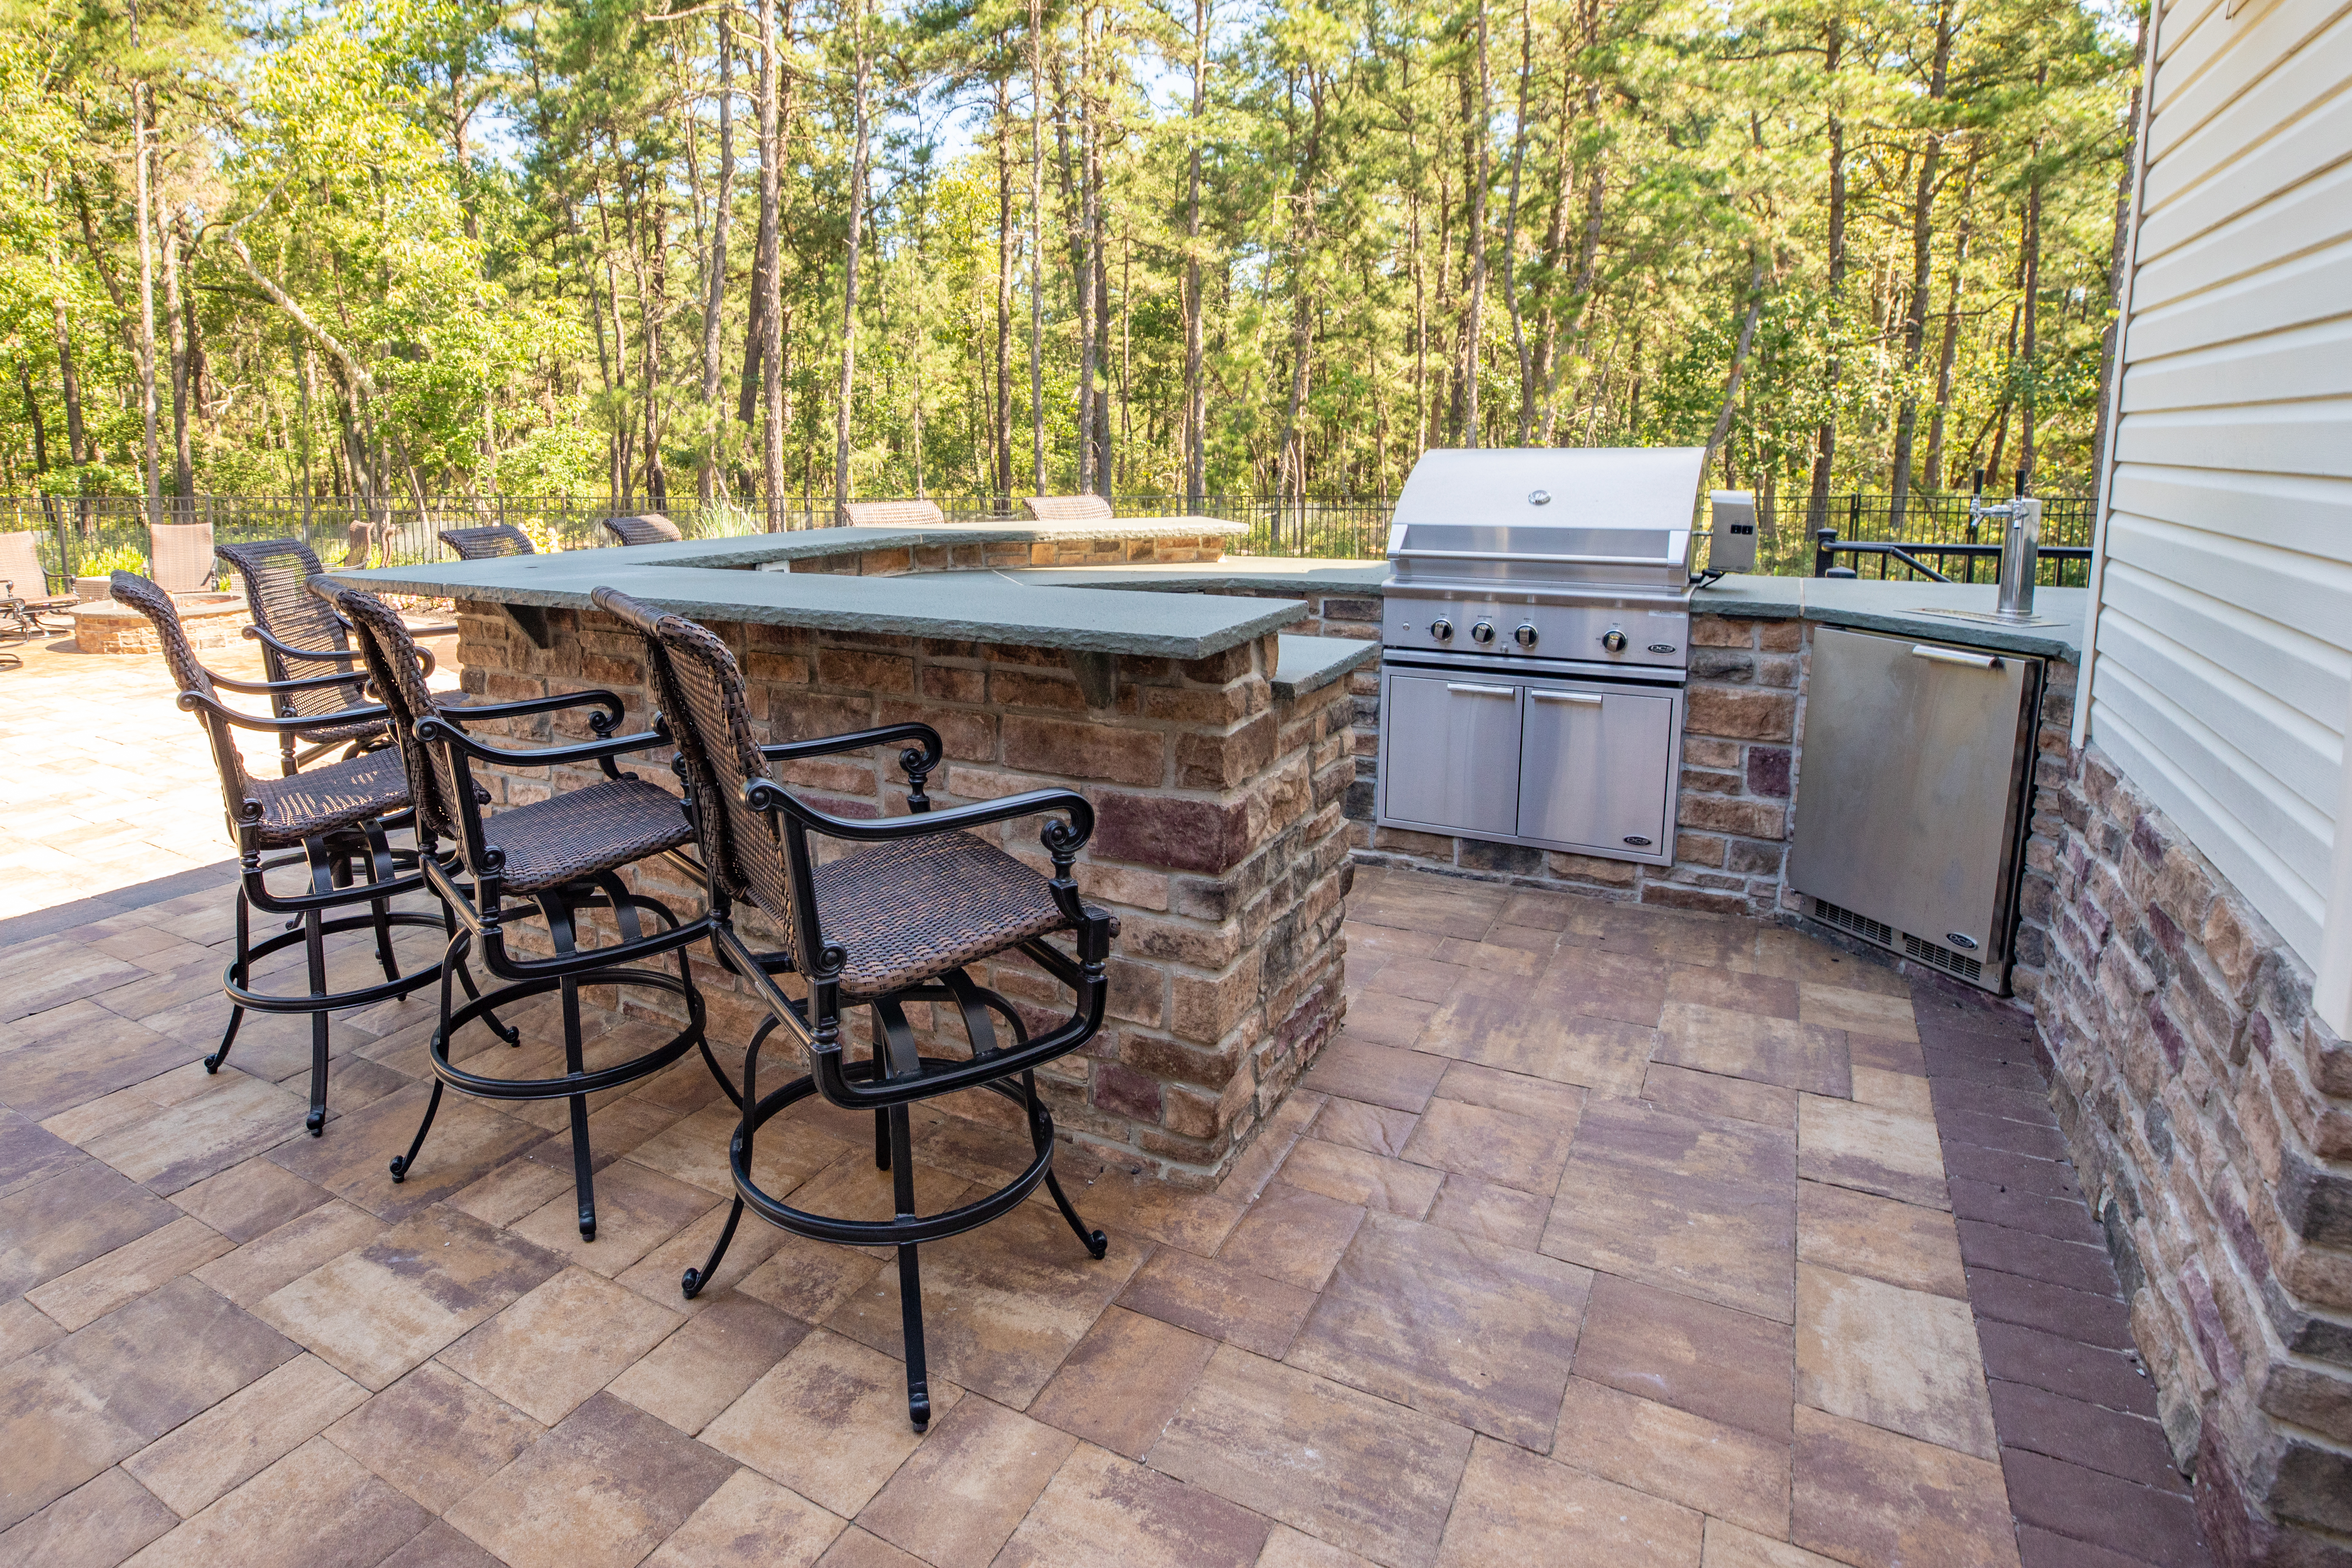 Outdoor kitchen featuring three bar stools, eating counter, stainless steel grill, and trees in the background.